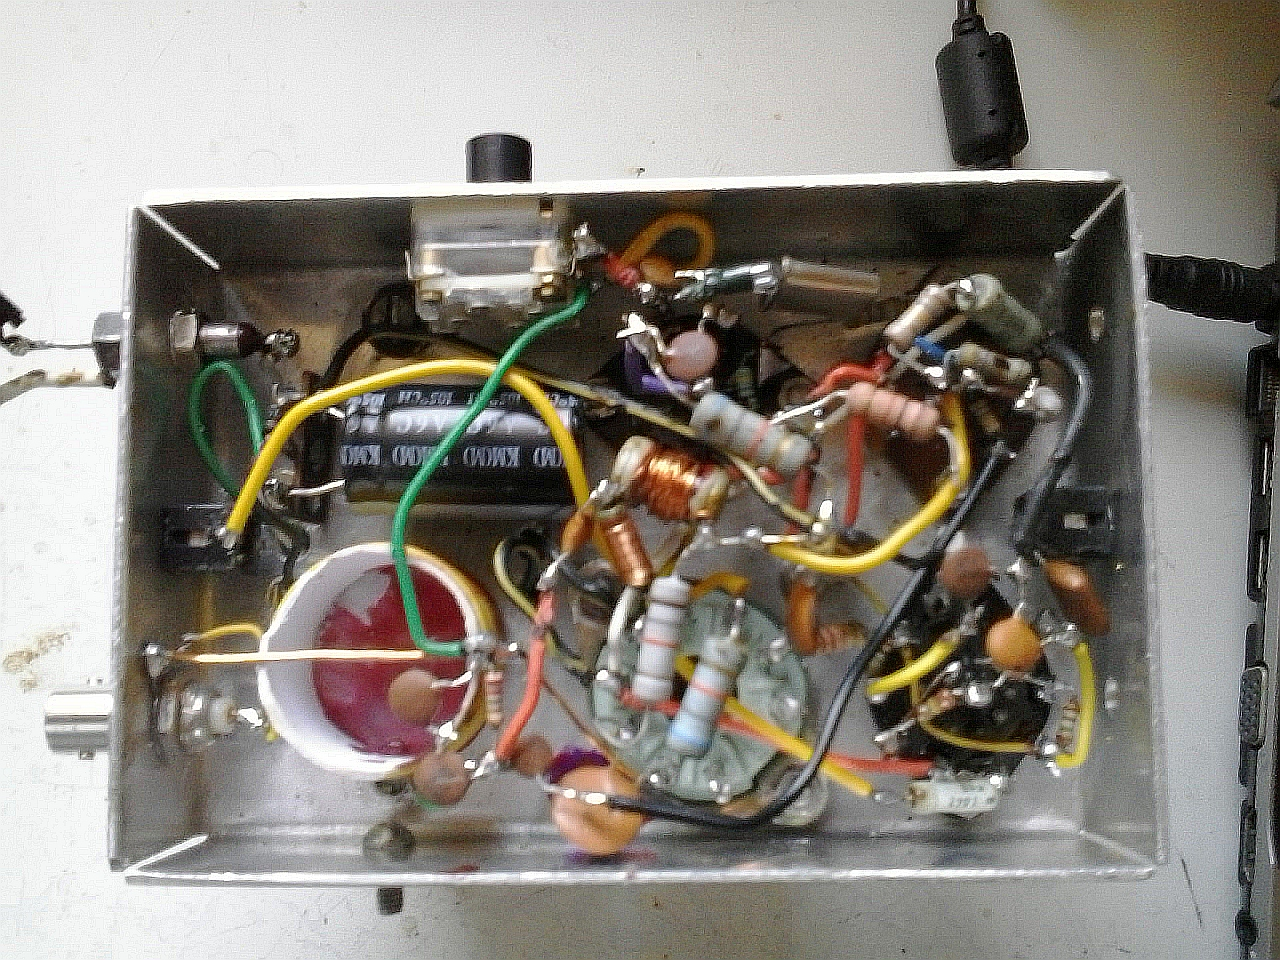 You are browsing images from the article: 4-valve 40m CW tcvr by PY2PBB